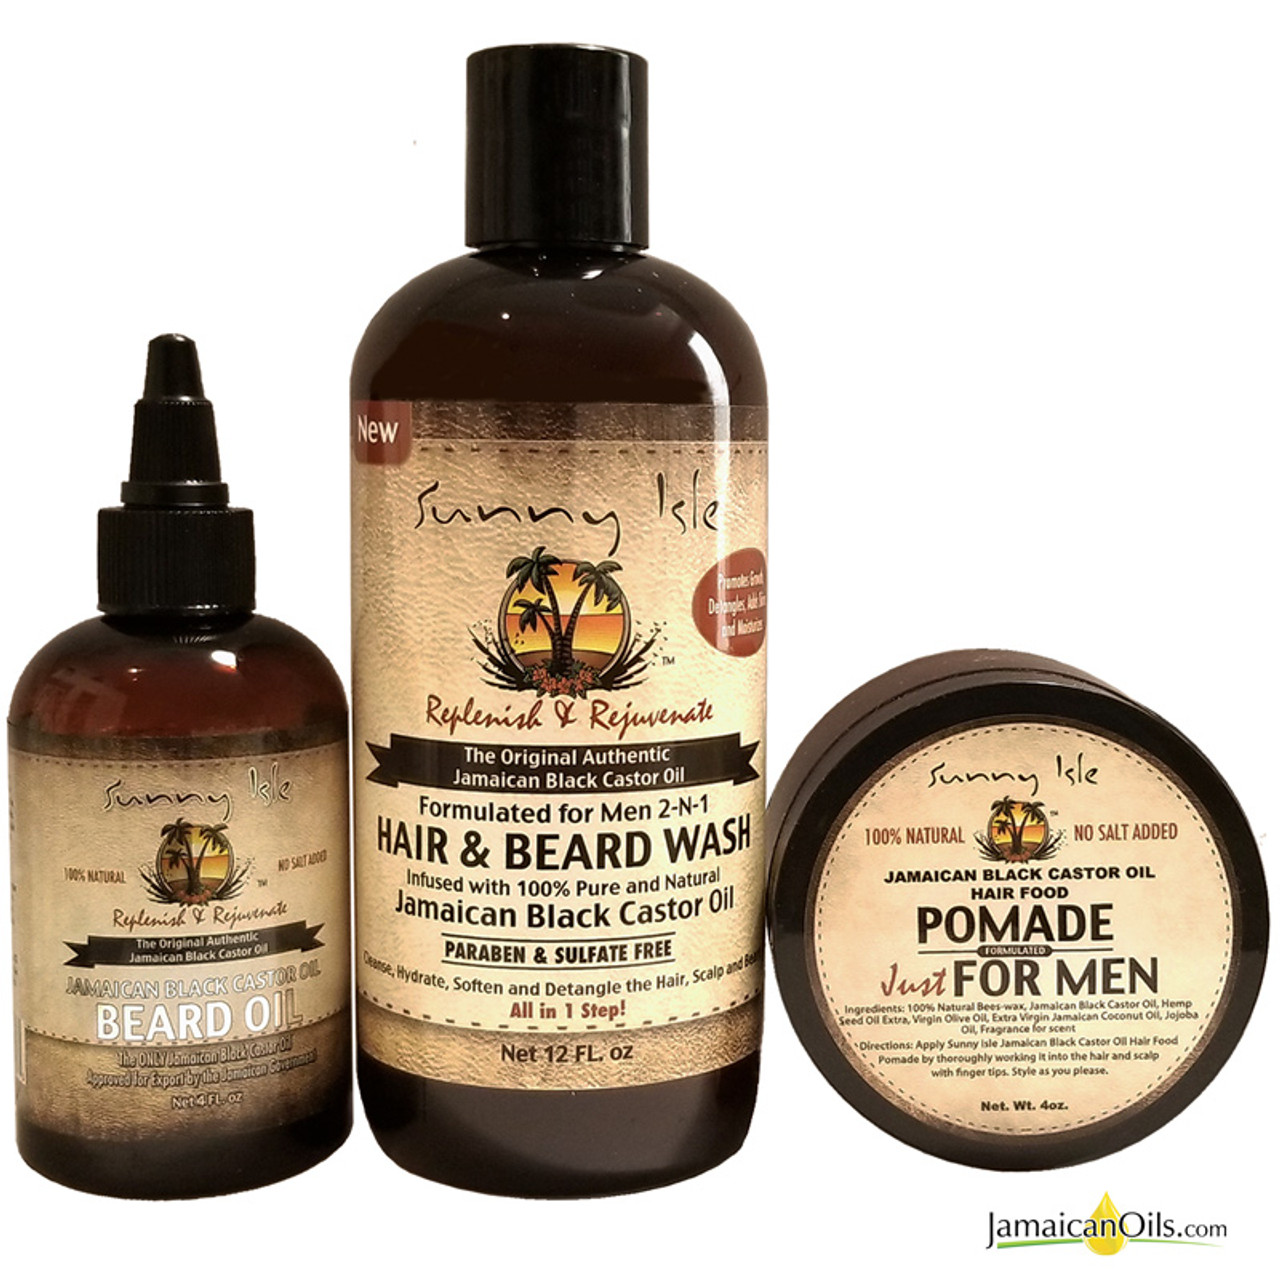 c8c0a59fcdc Sunny-Isle-Formulated-Just-for-Men-2-N-1-Hair--Beard-Wash-12oz-with-Beard- Oil-and-Pomade-4oz-Combo1__78131.1509916543.jpg?c=2&imbypass=on